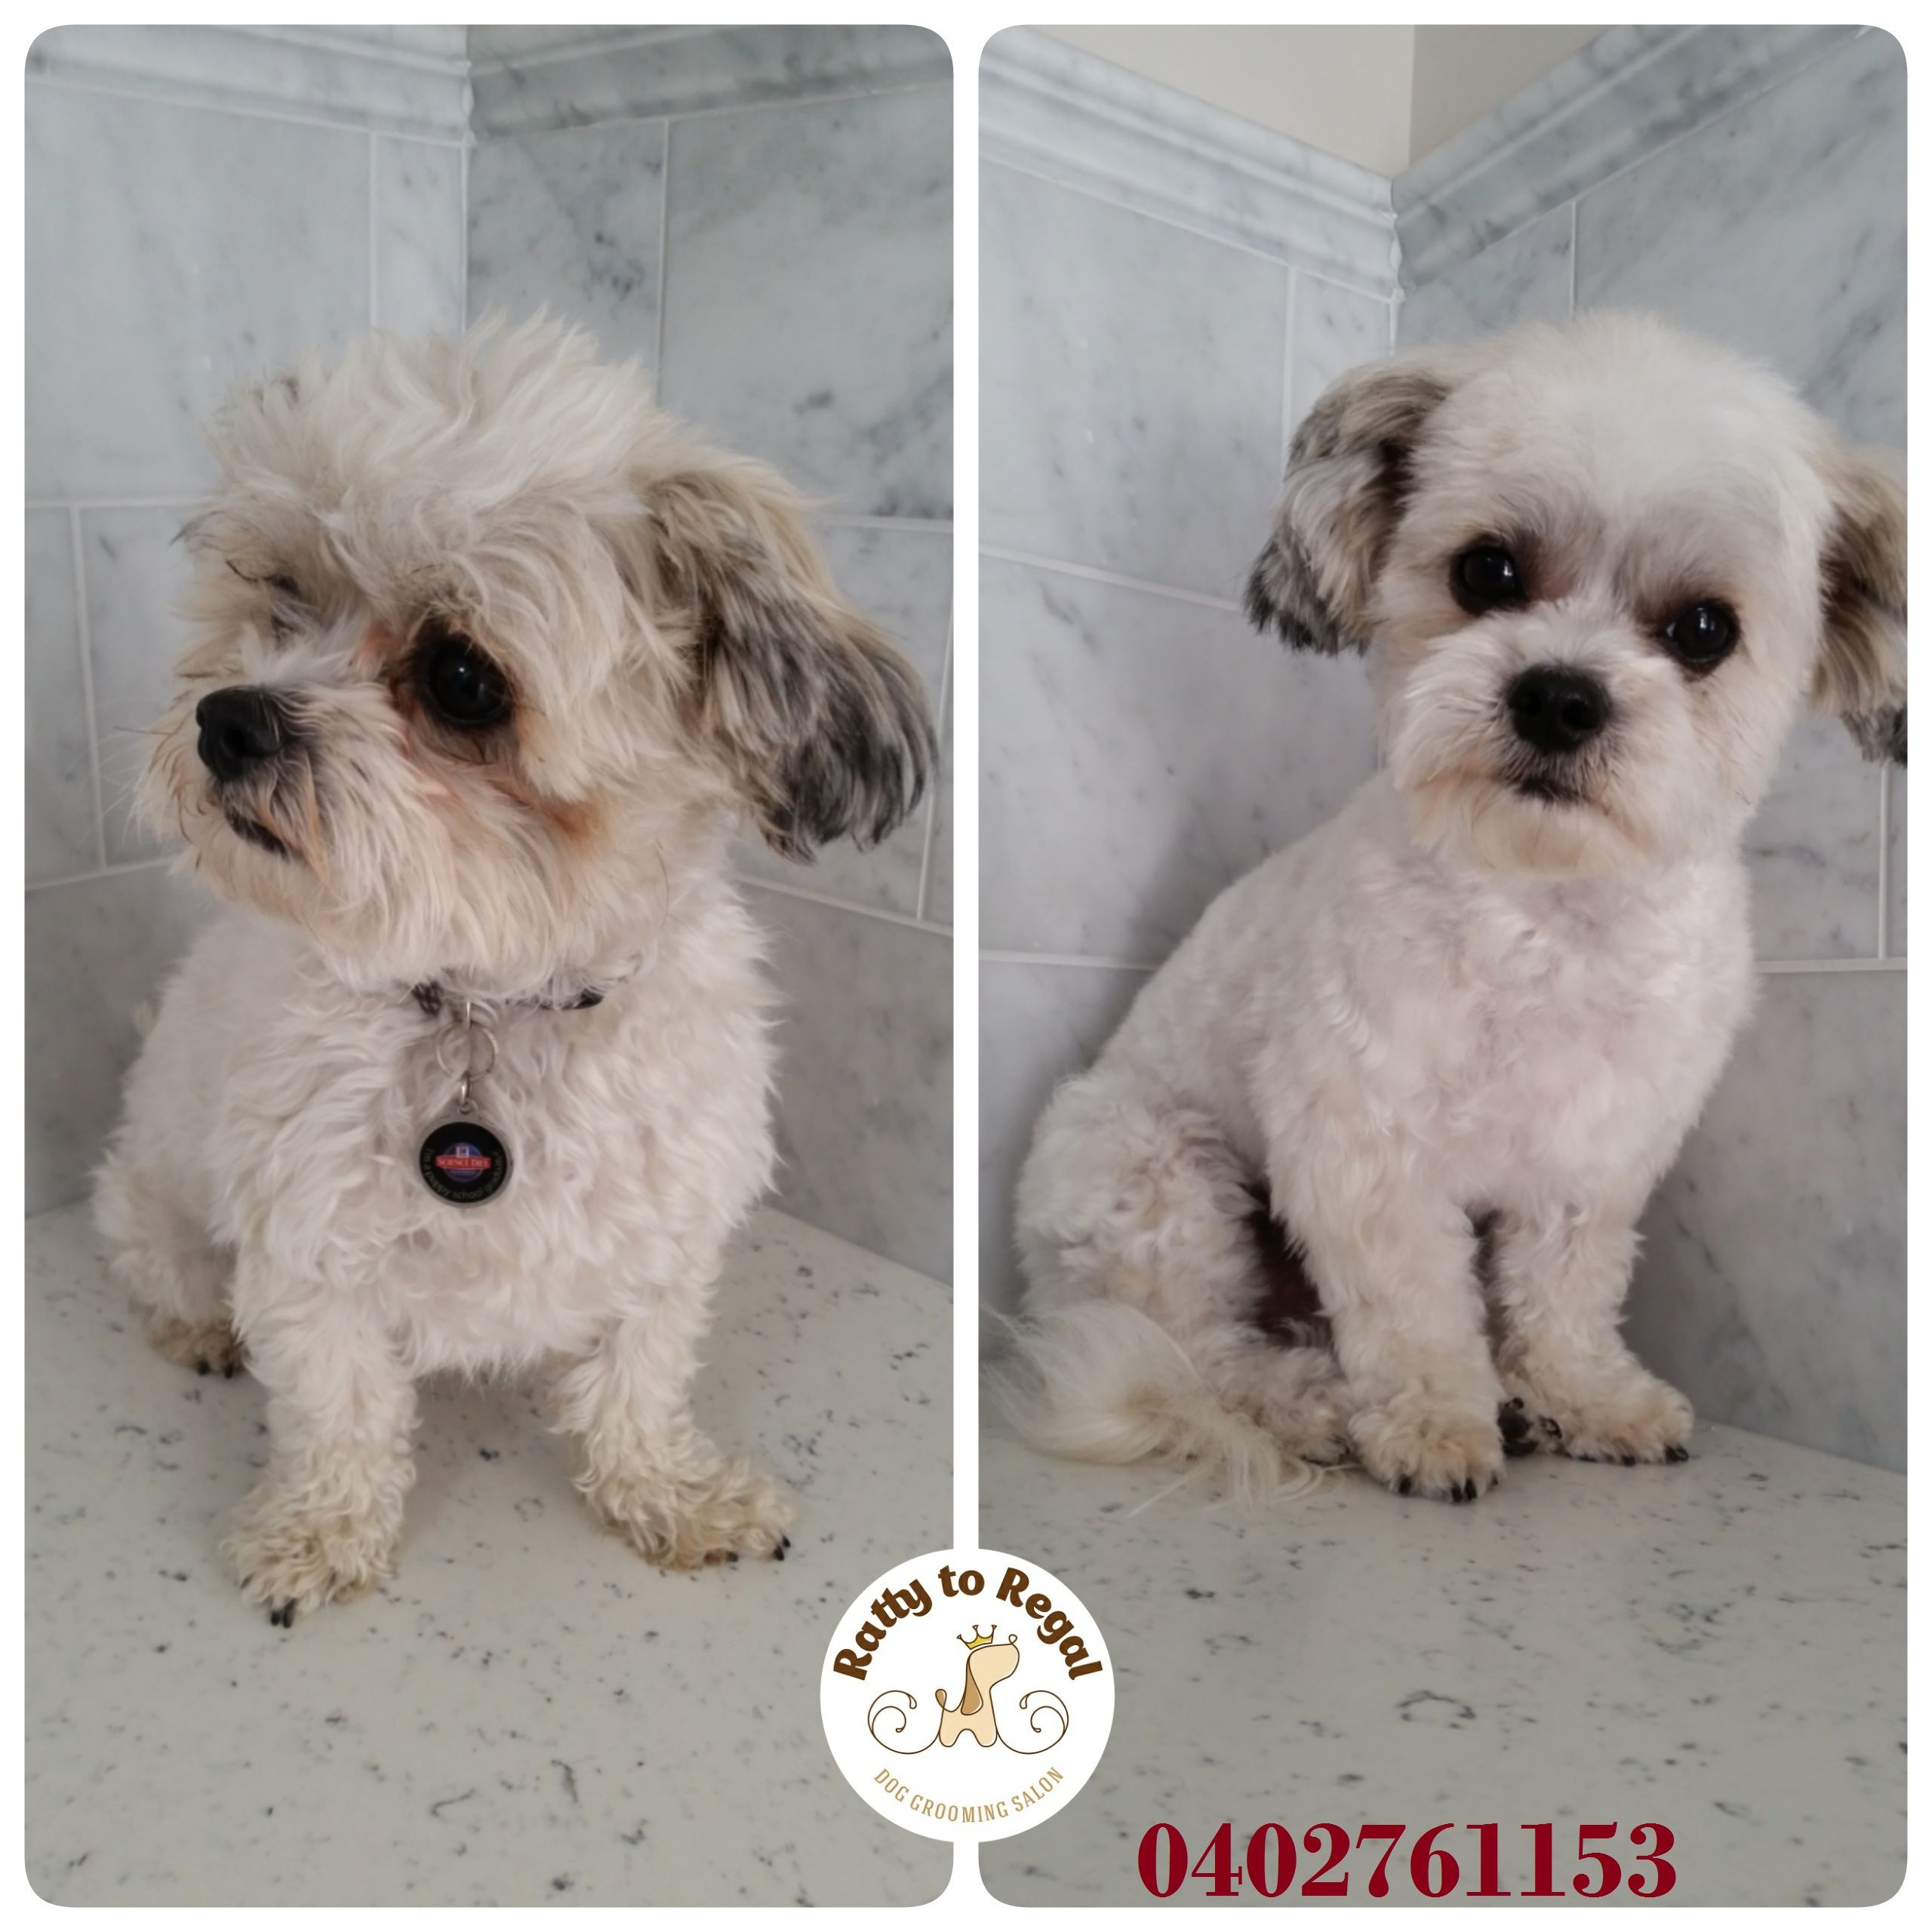 Milo, Maltese x Shih Tzu, 1 year young. Full Groom. Website: https://rattytoregal.wixsite.com/rattytoregal Facebook: https://www.facebook.com/rattytoregal/